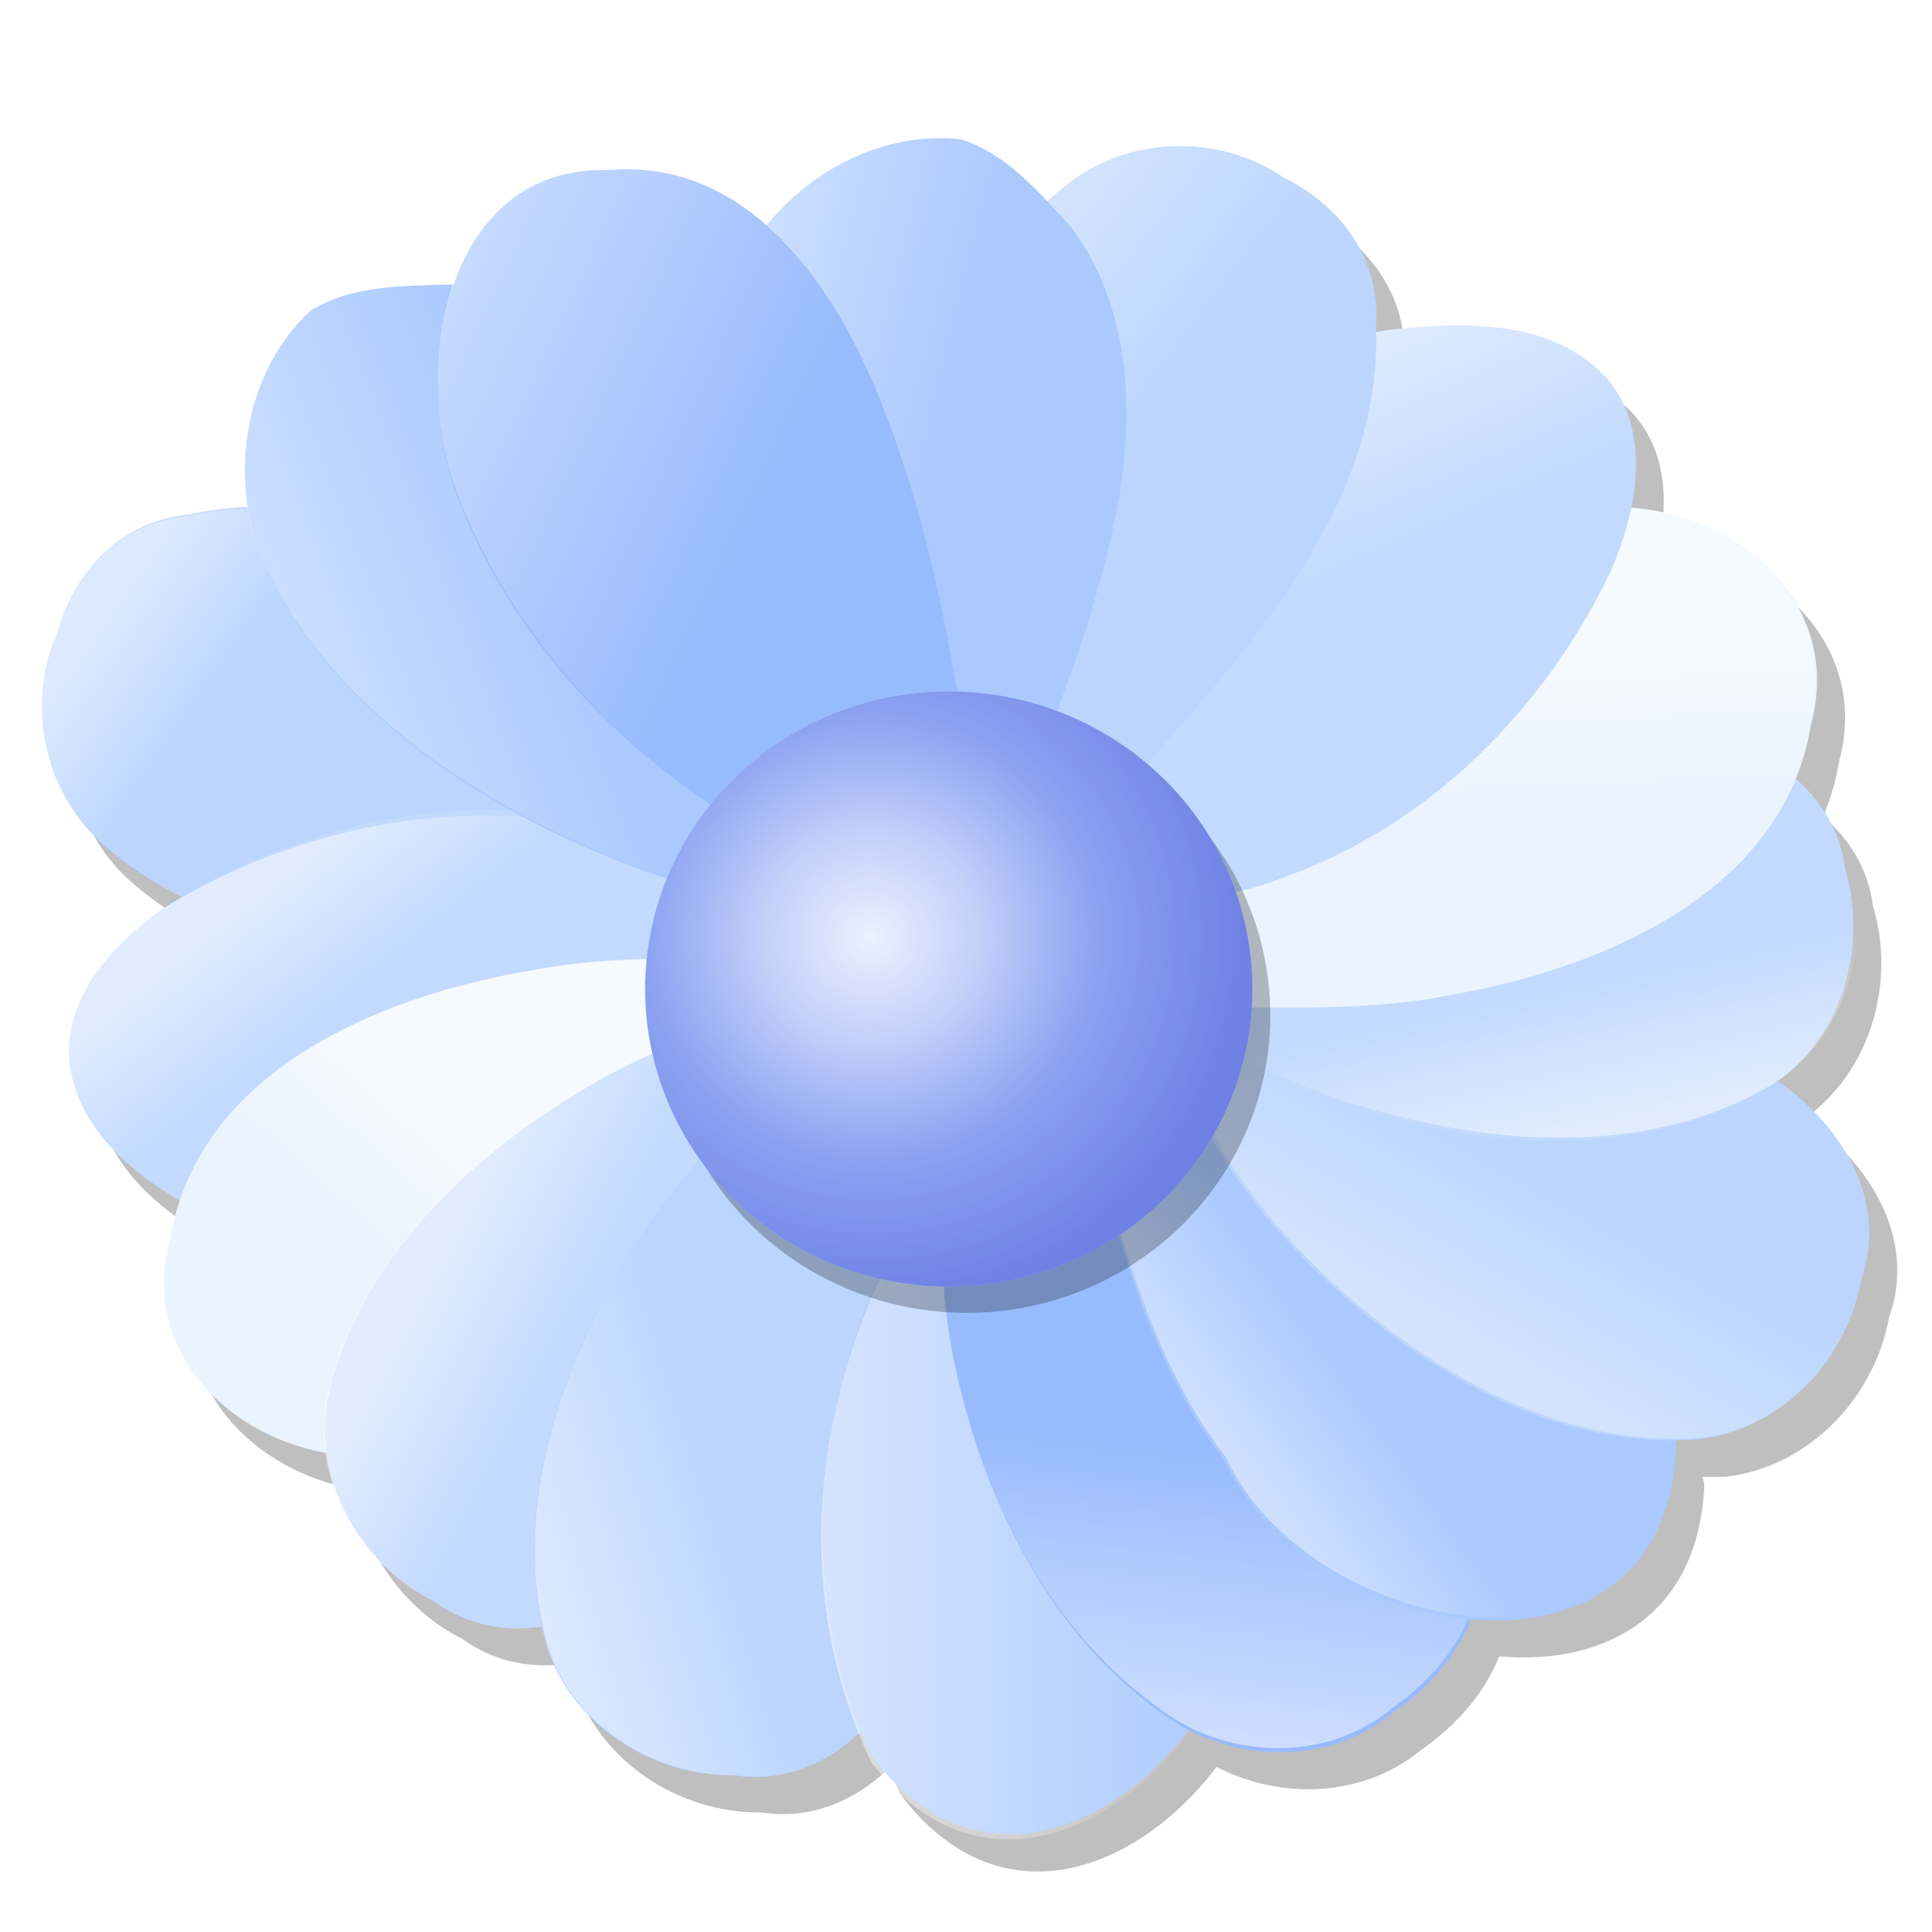 Blue flower by nicubunu